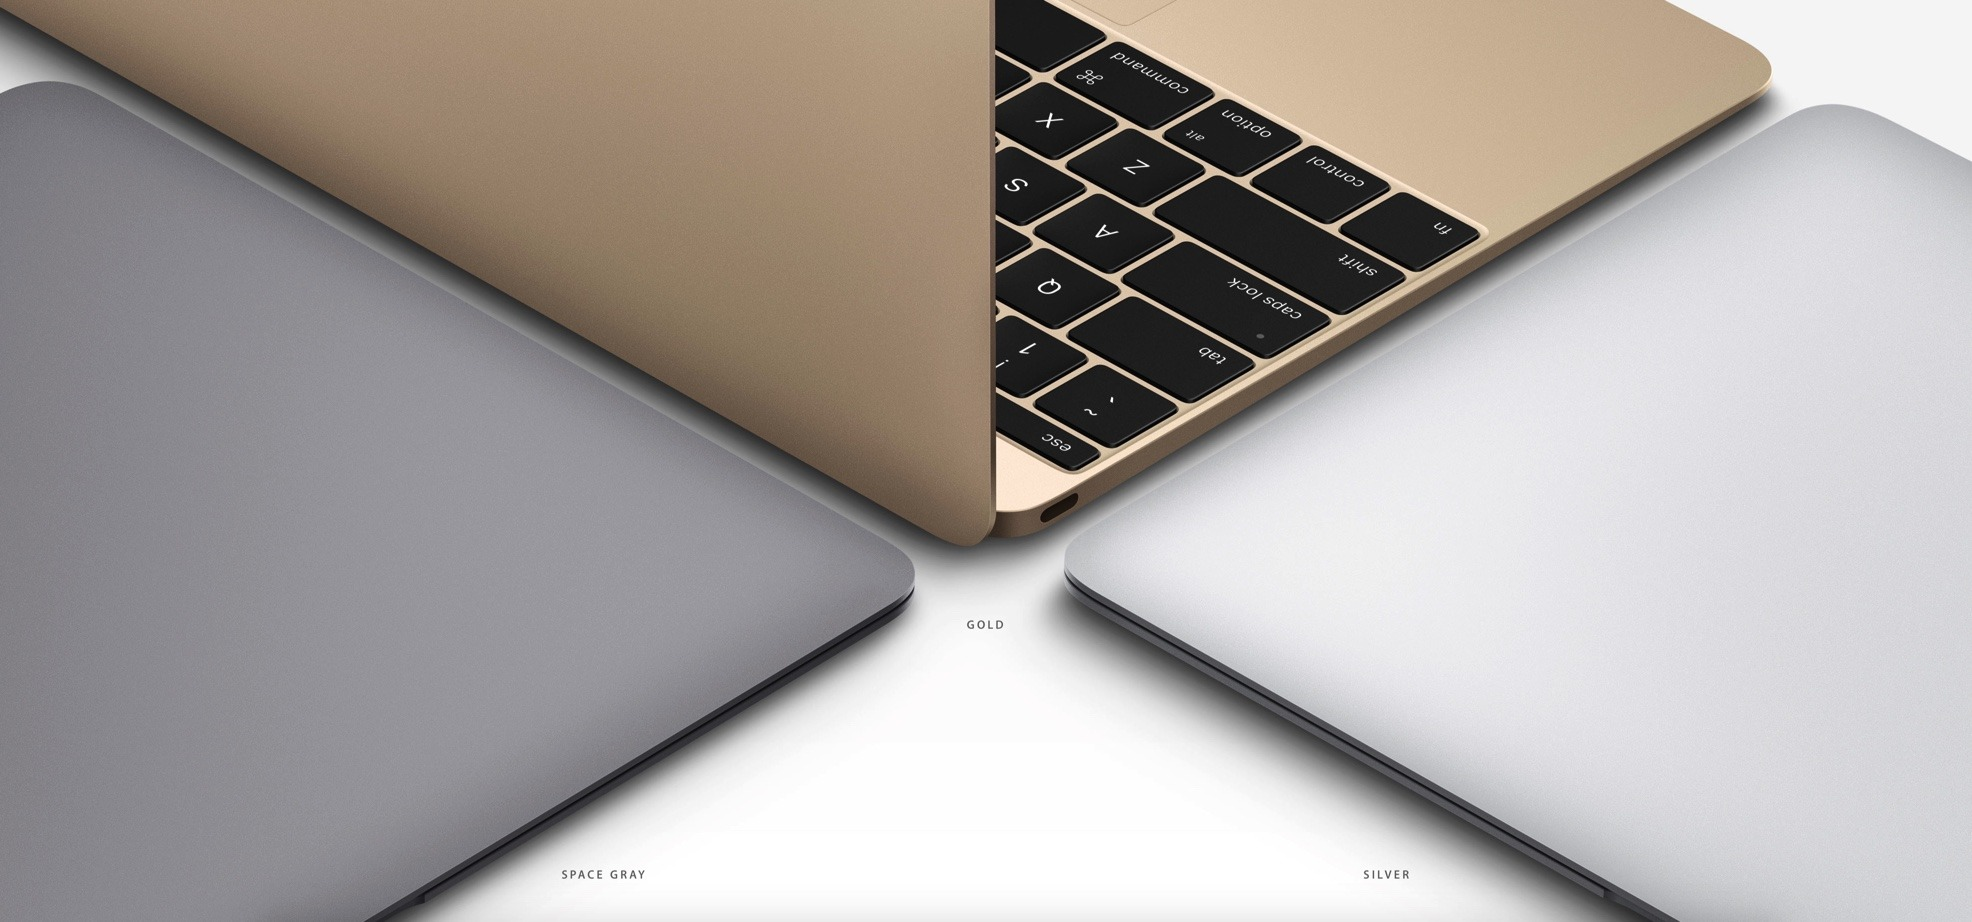 macbook-apple1